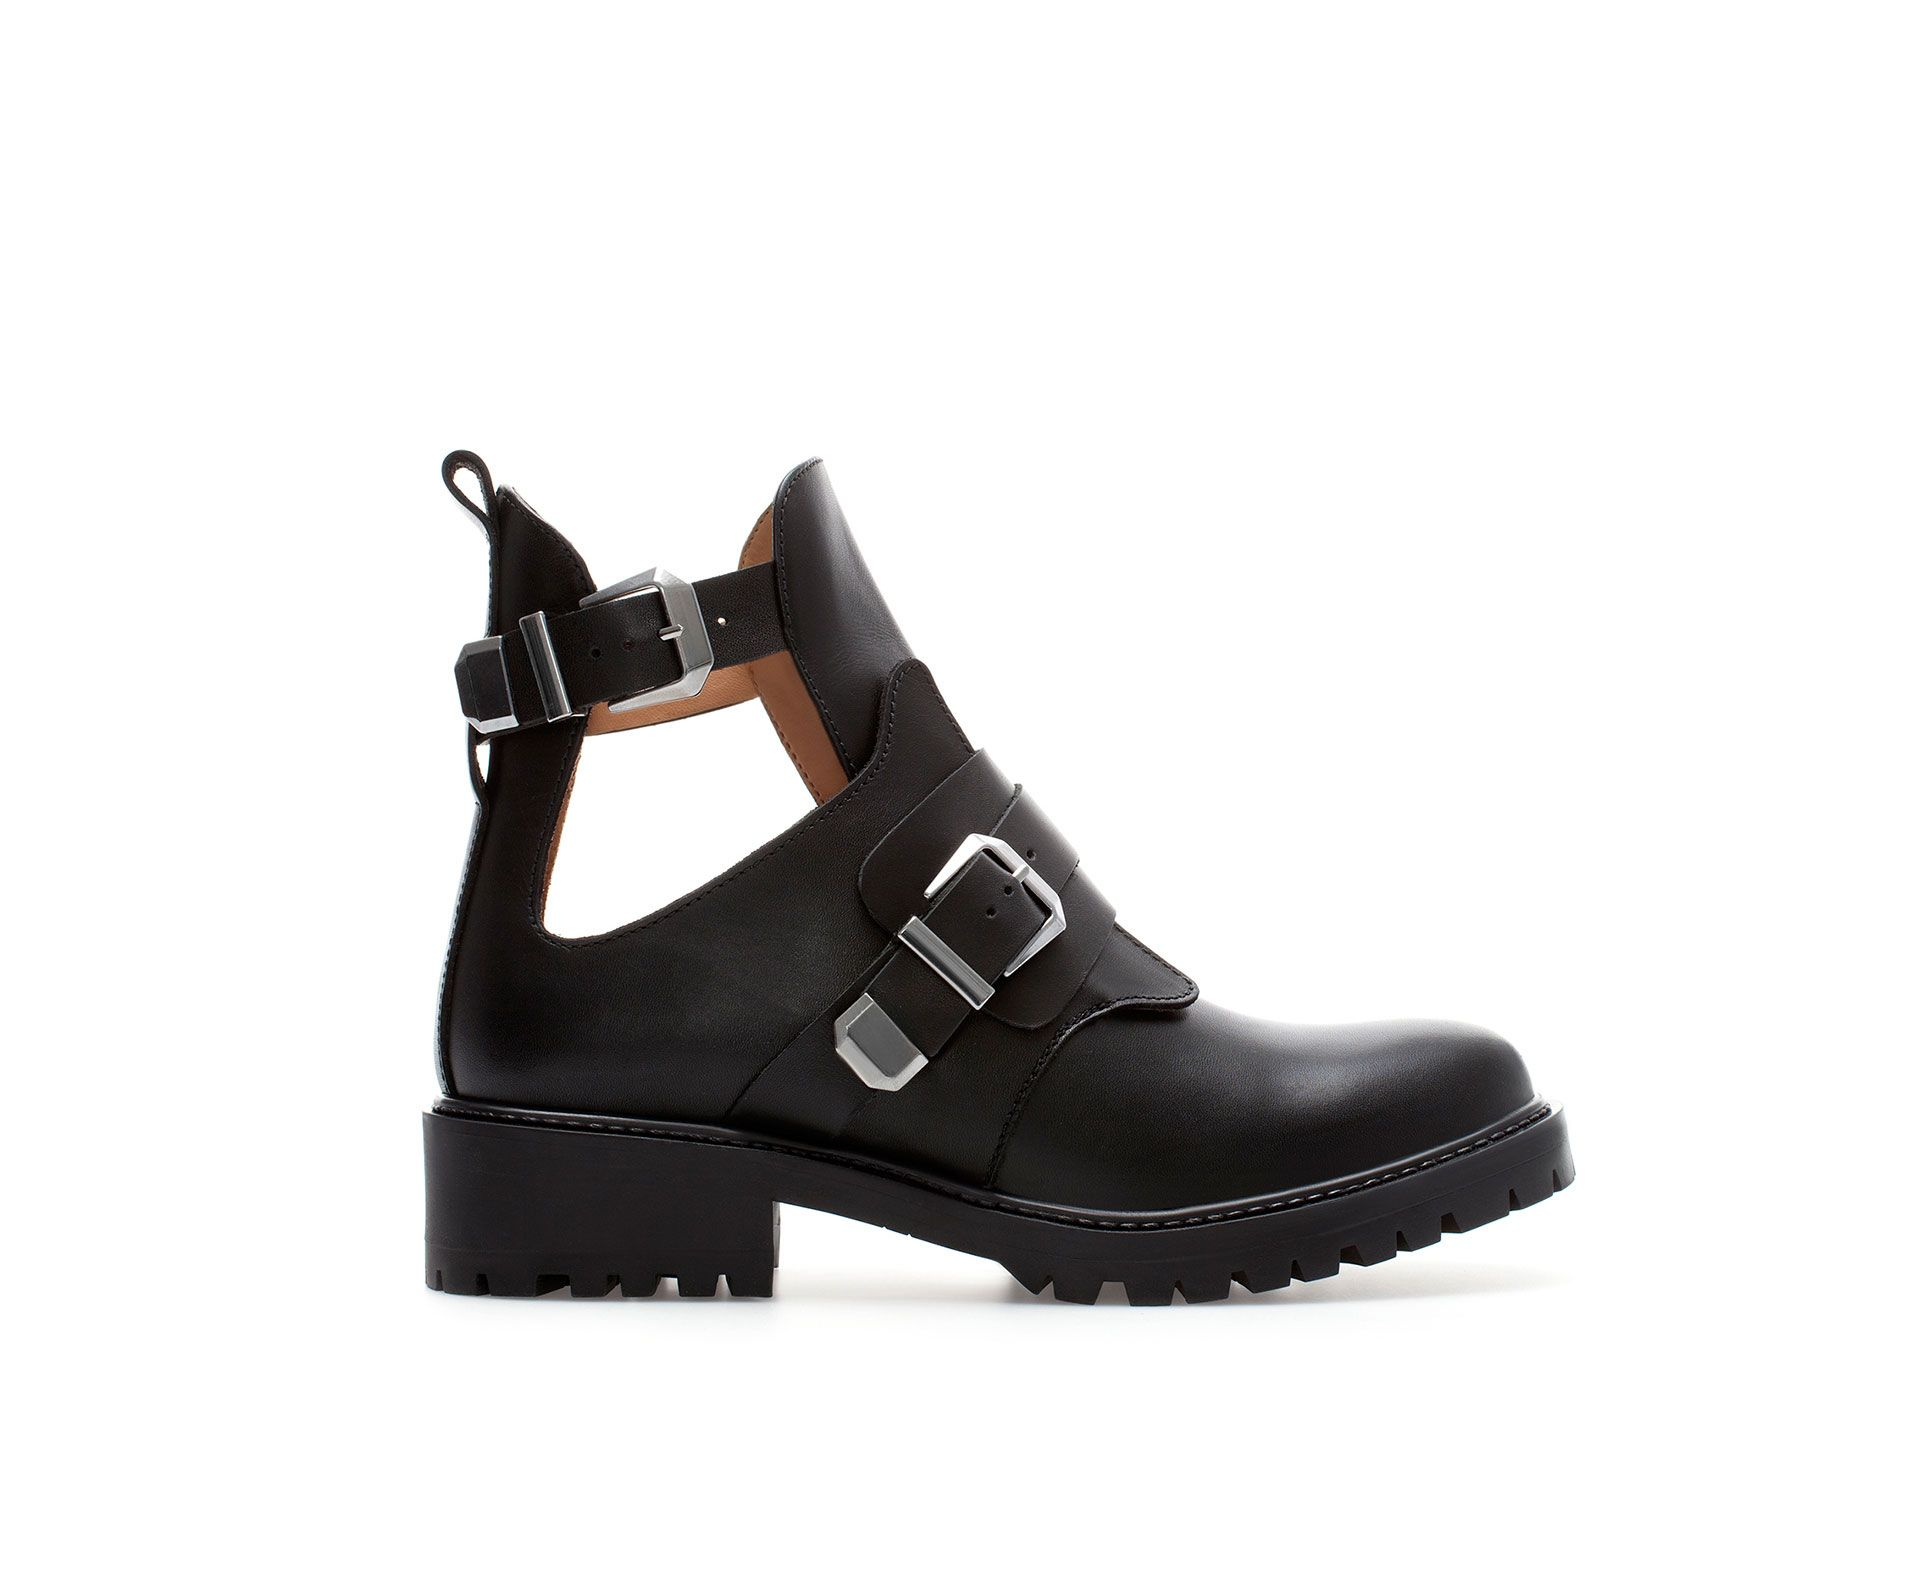 OPEN LEATHER ANKLE BOOT WITH BUCKLES - Shoes - TRF | ZARA Czech Republic